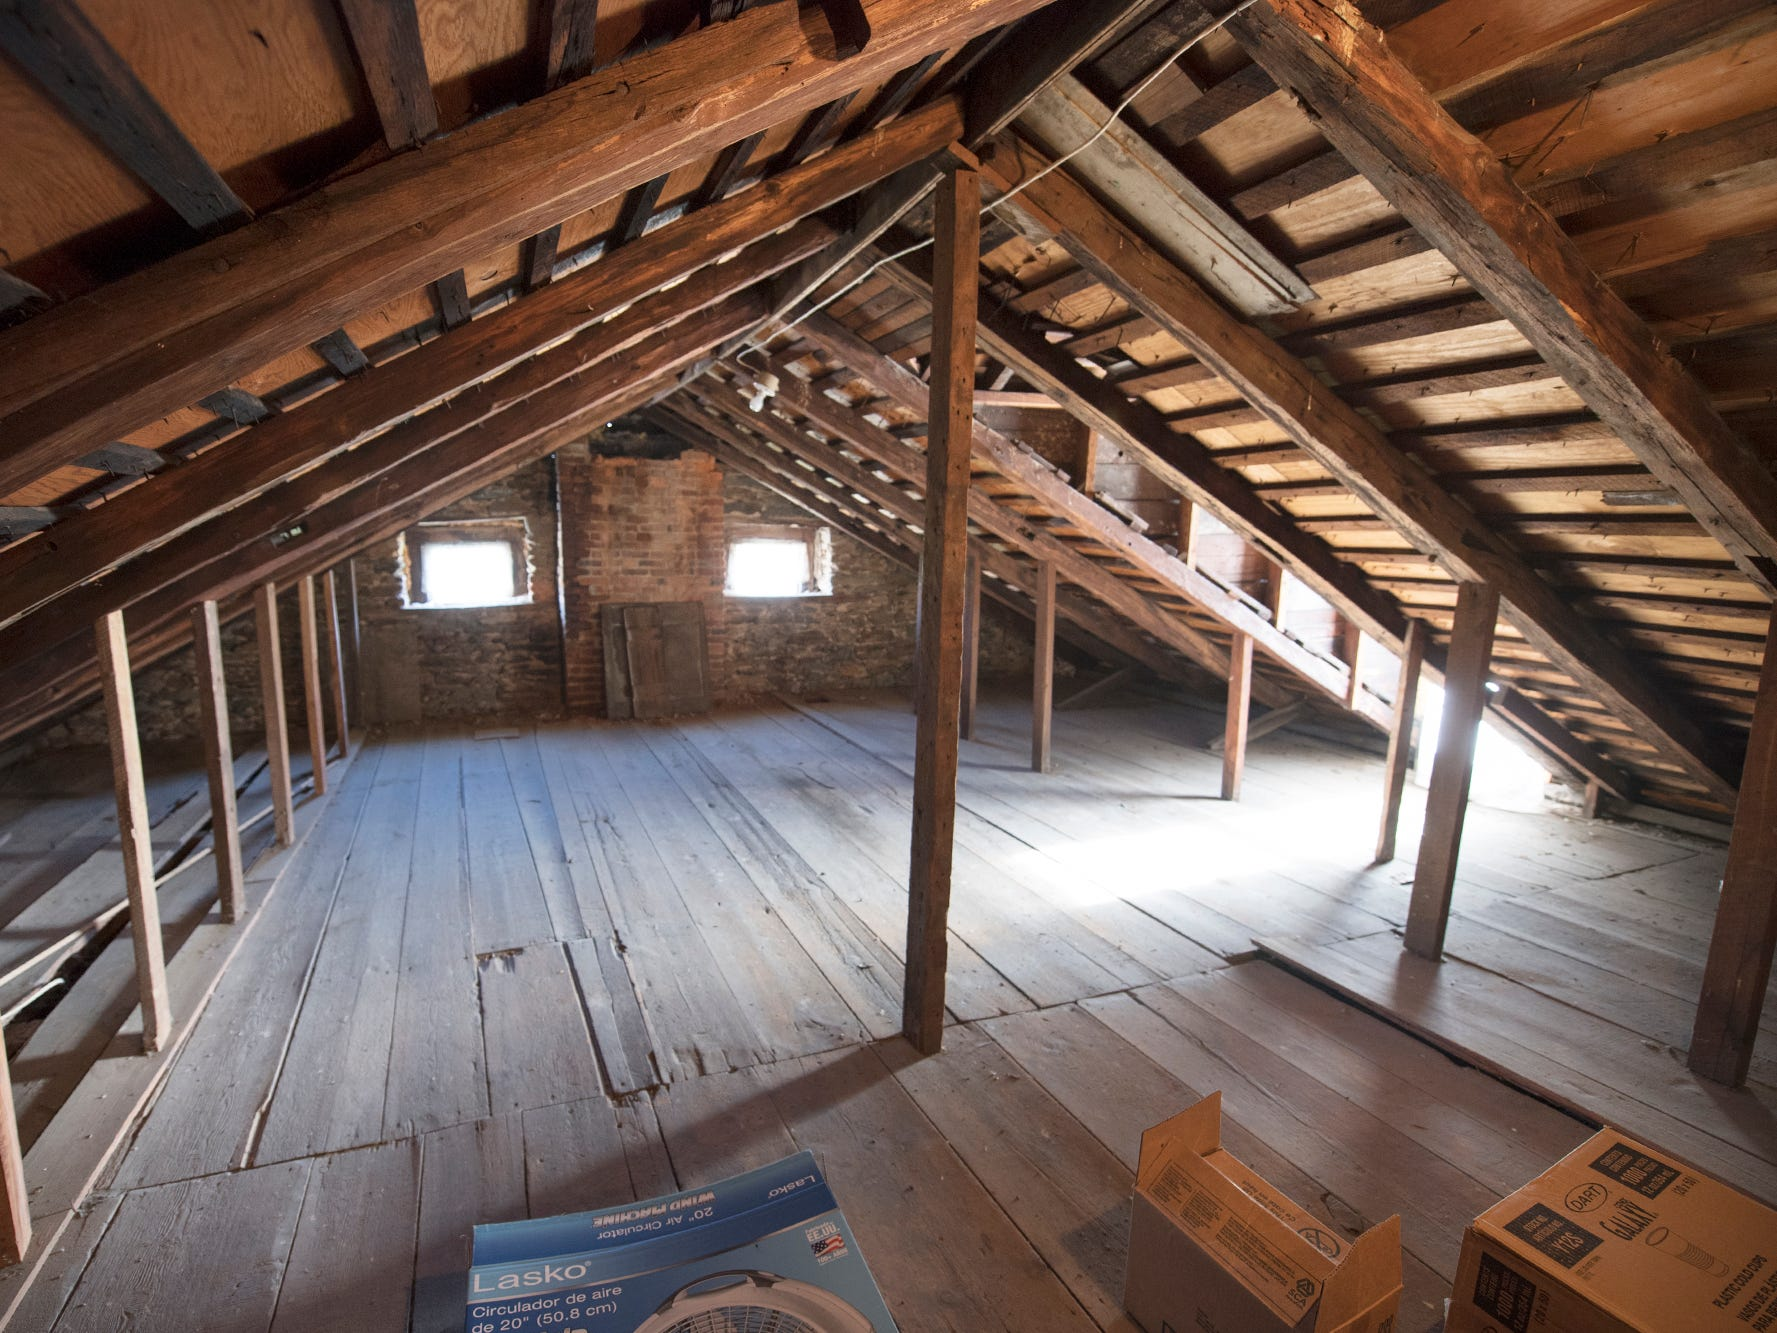 The attic remains timeless at Gray Goose Manor, built in 1798 in Springfield Township.